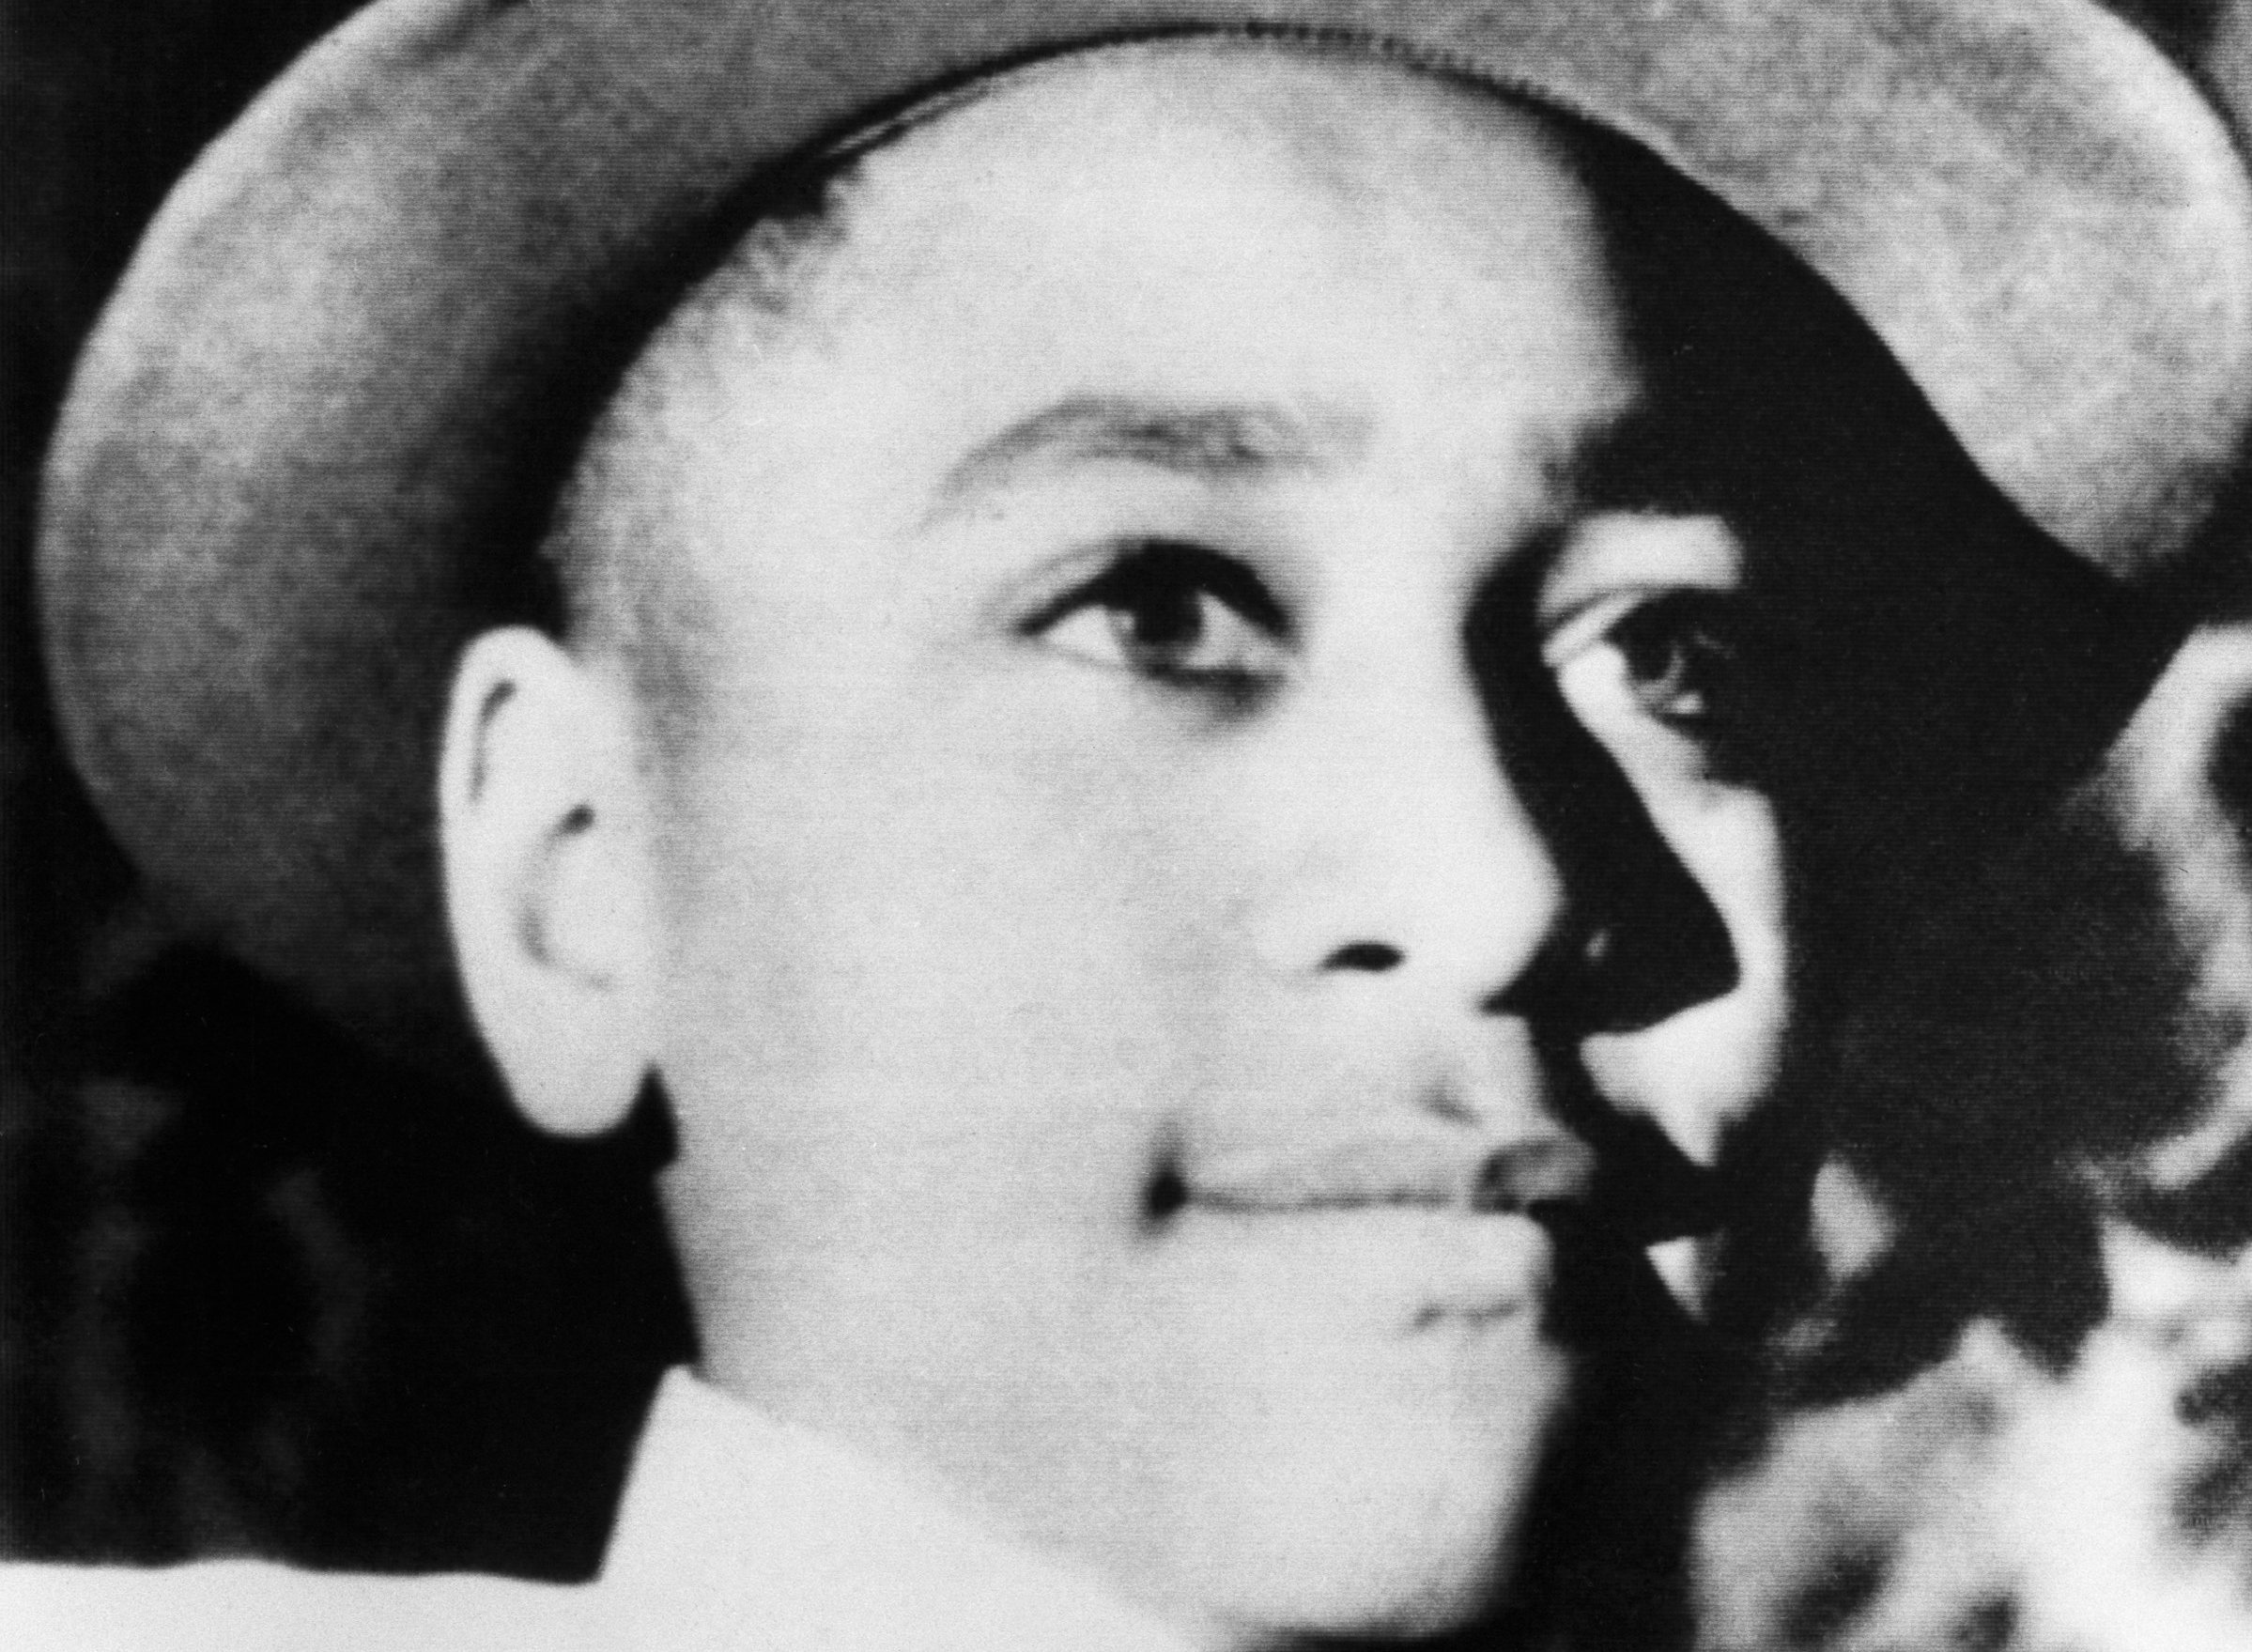 Emmett Till, 14, was abducted and killed in Mississippi after allegedly flirting with a white woman